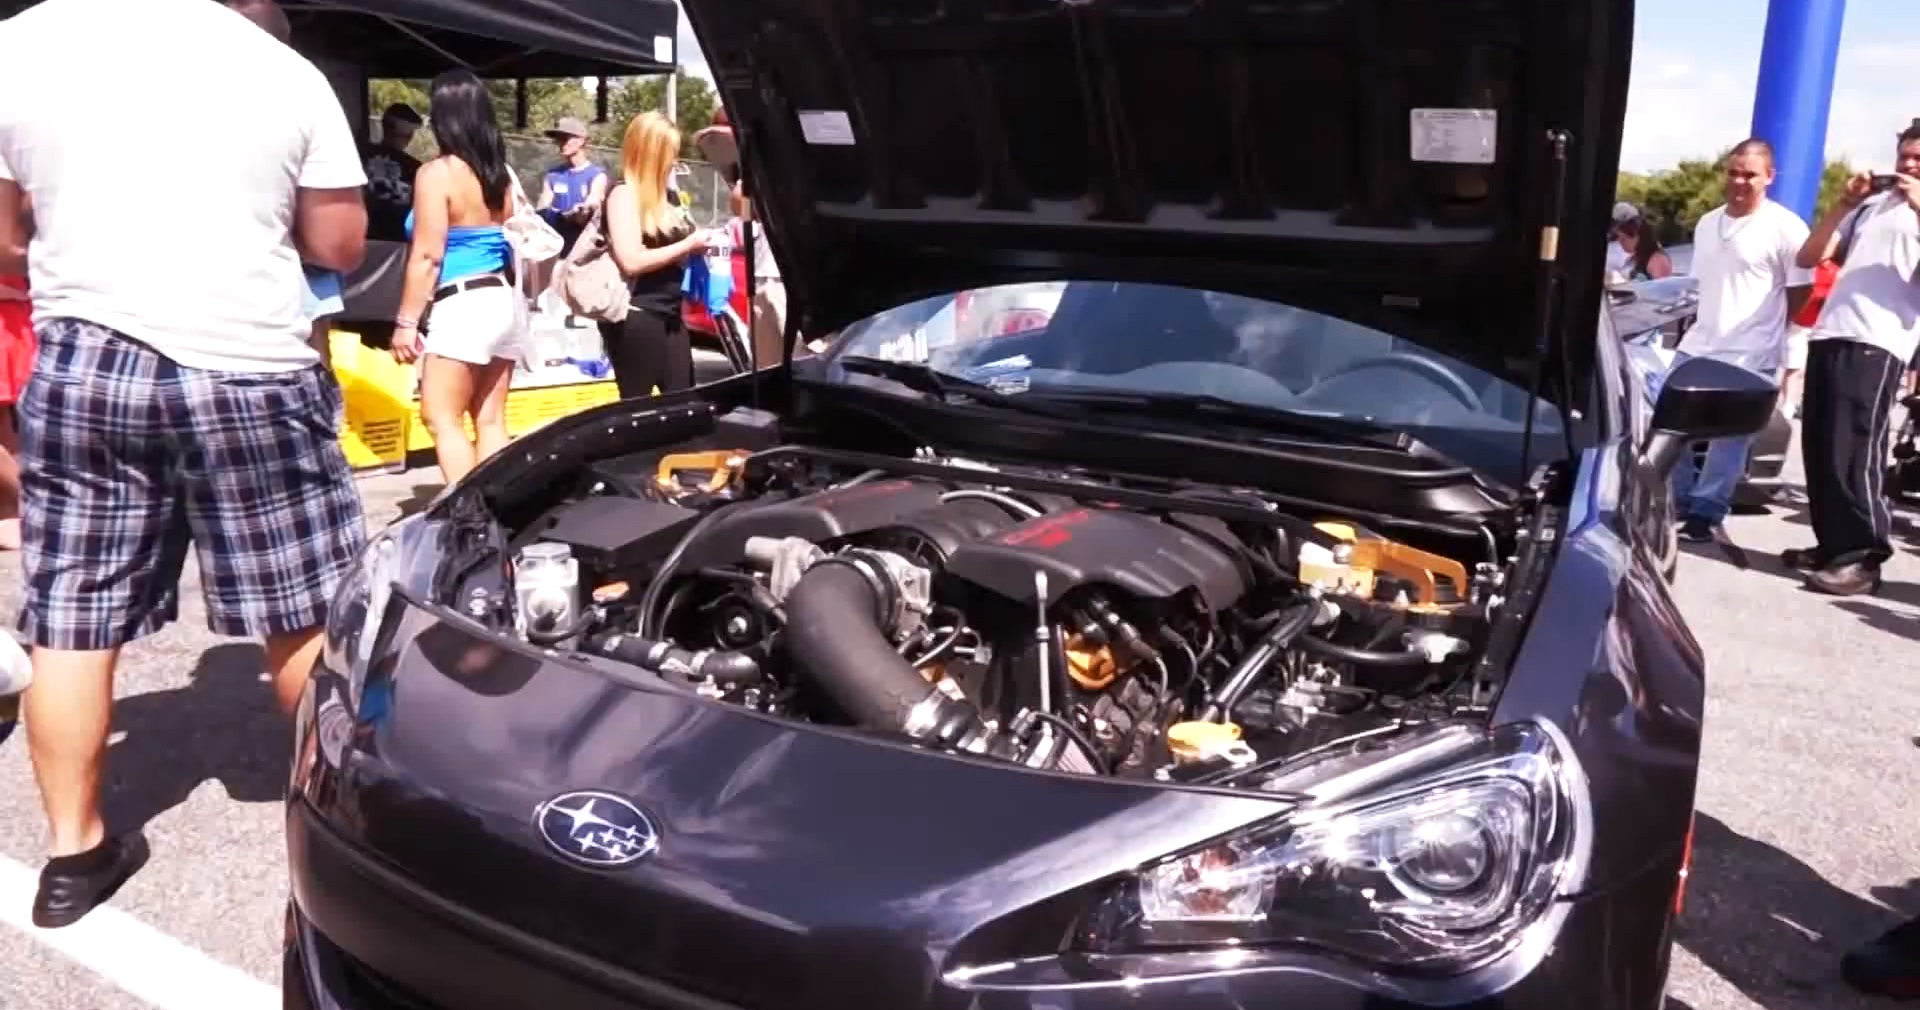 Brz06 A Subaru With V8 Corvette Engine Swap Has 500 Hp